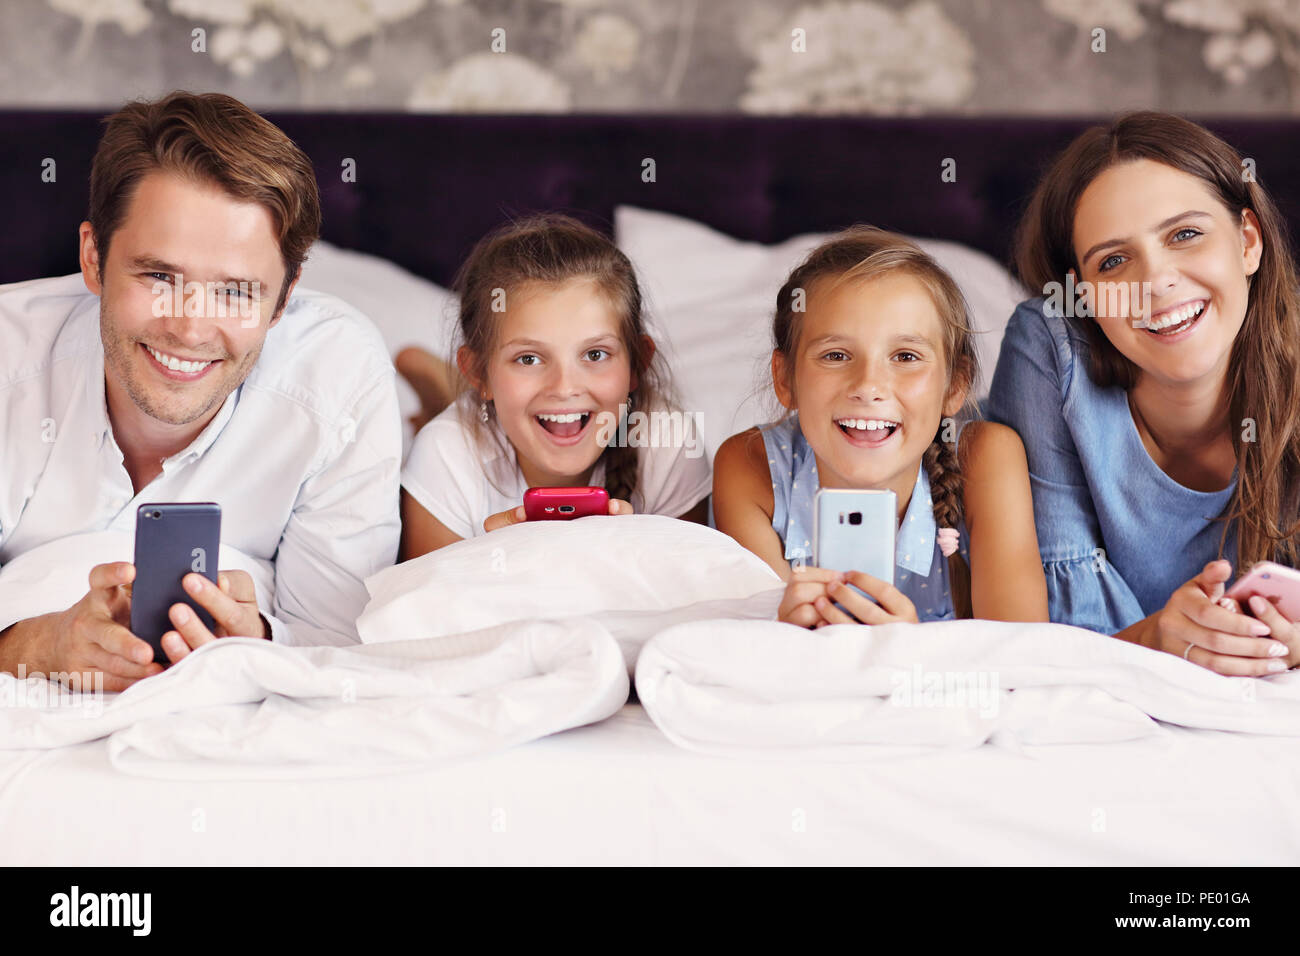 Happy family relaxing in hotel room - Stock Image